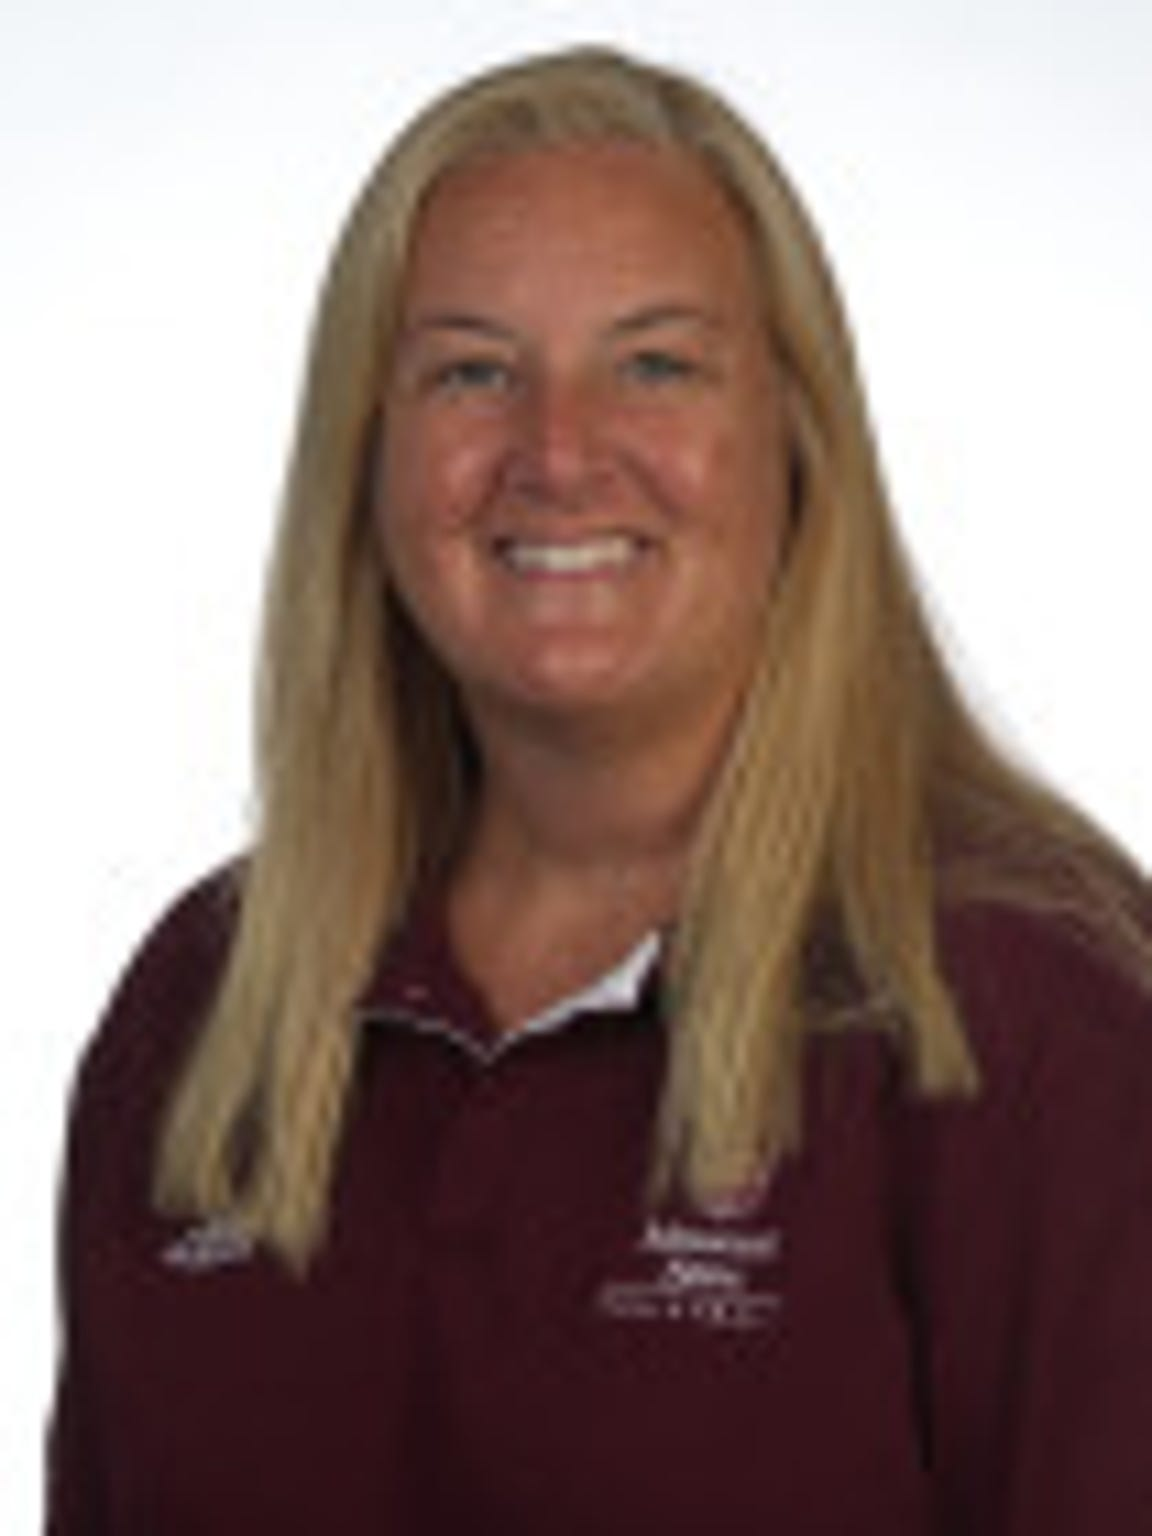 MSU volleyball coach Melissa Stokes